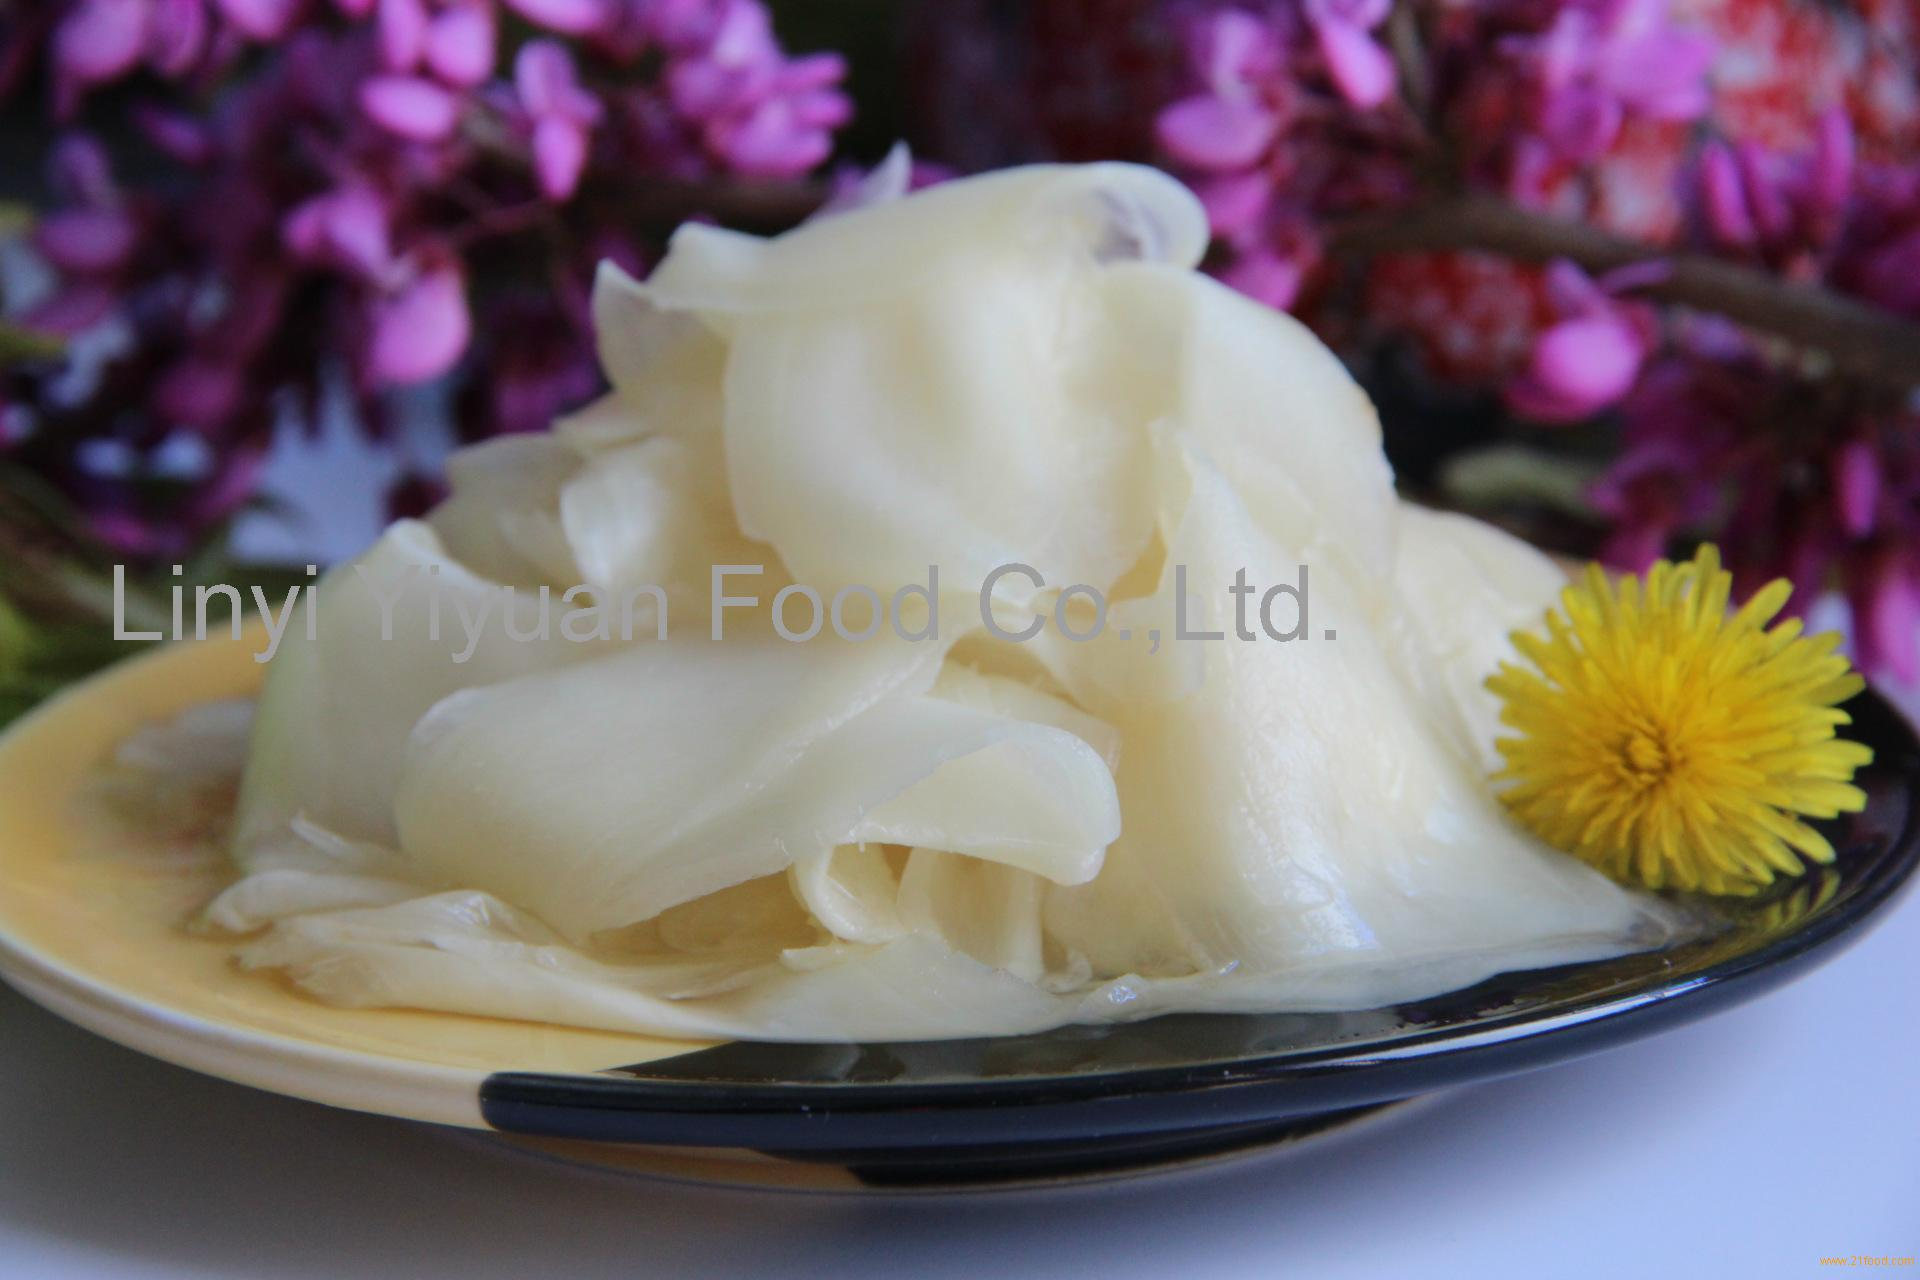 grade A pickled pink sushi ginger from Shandong